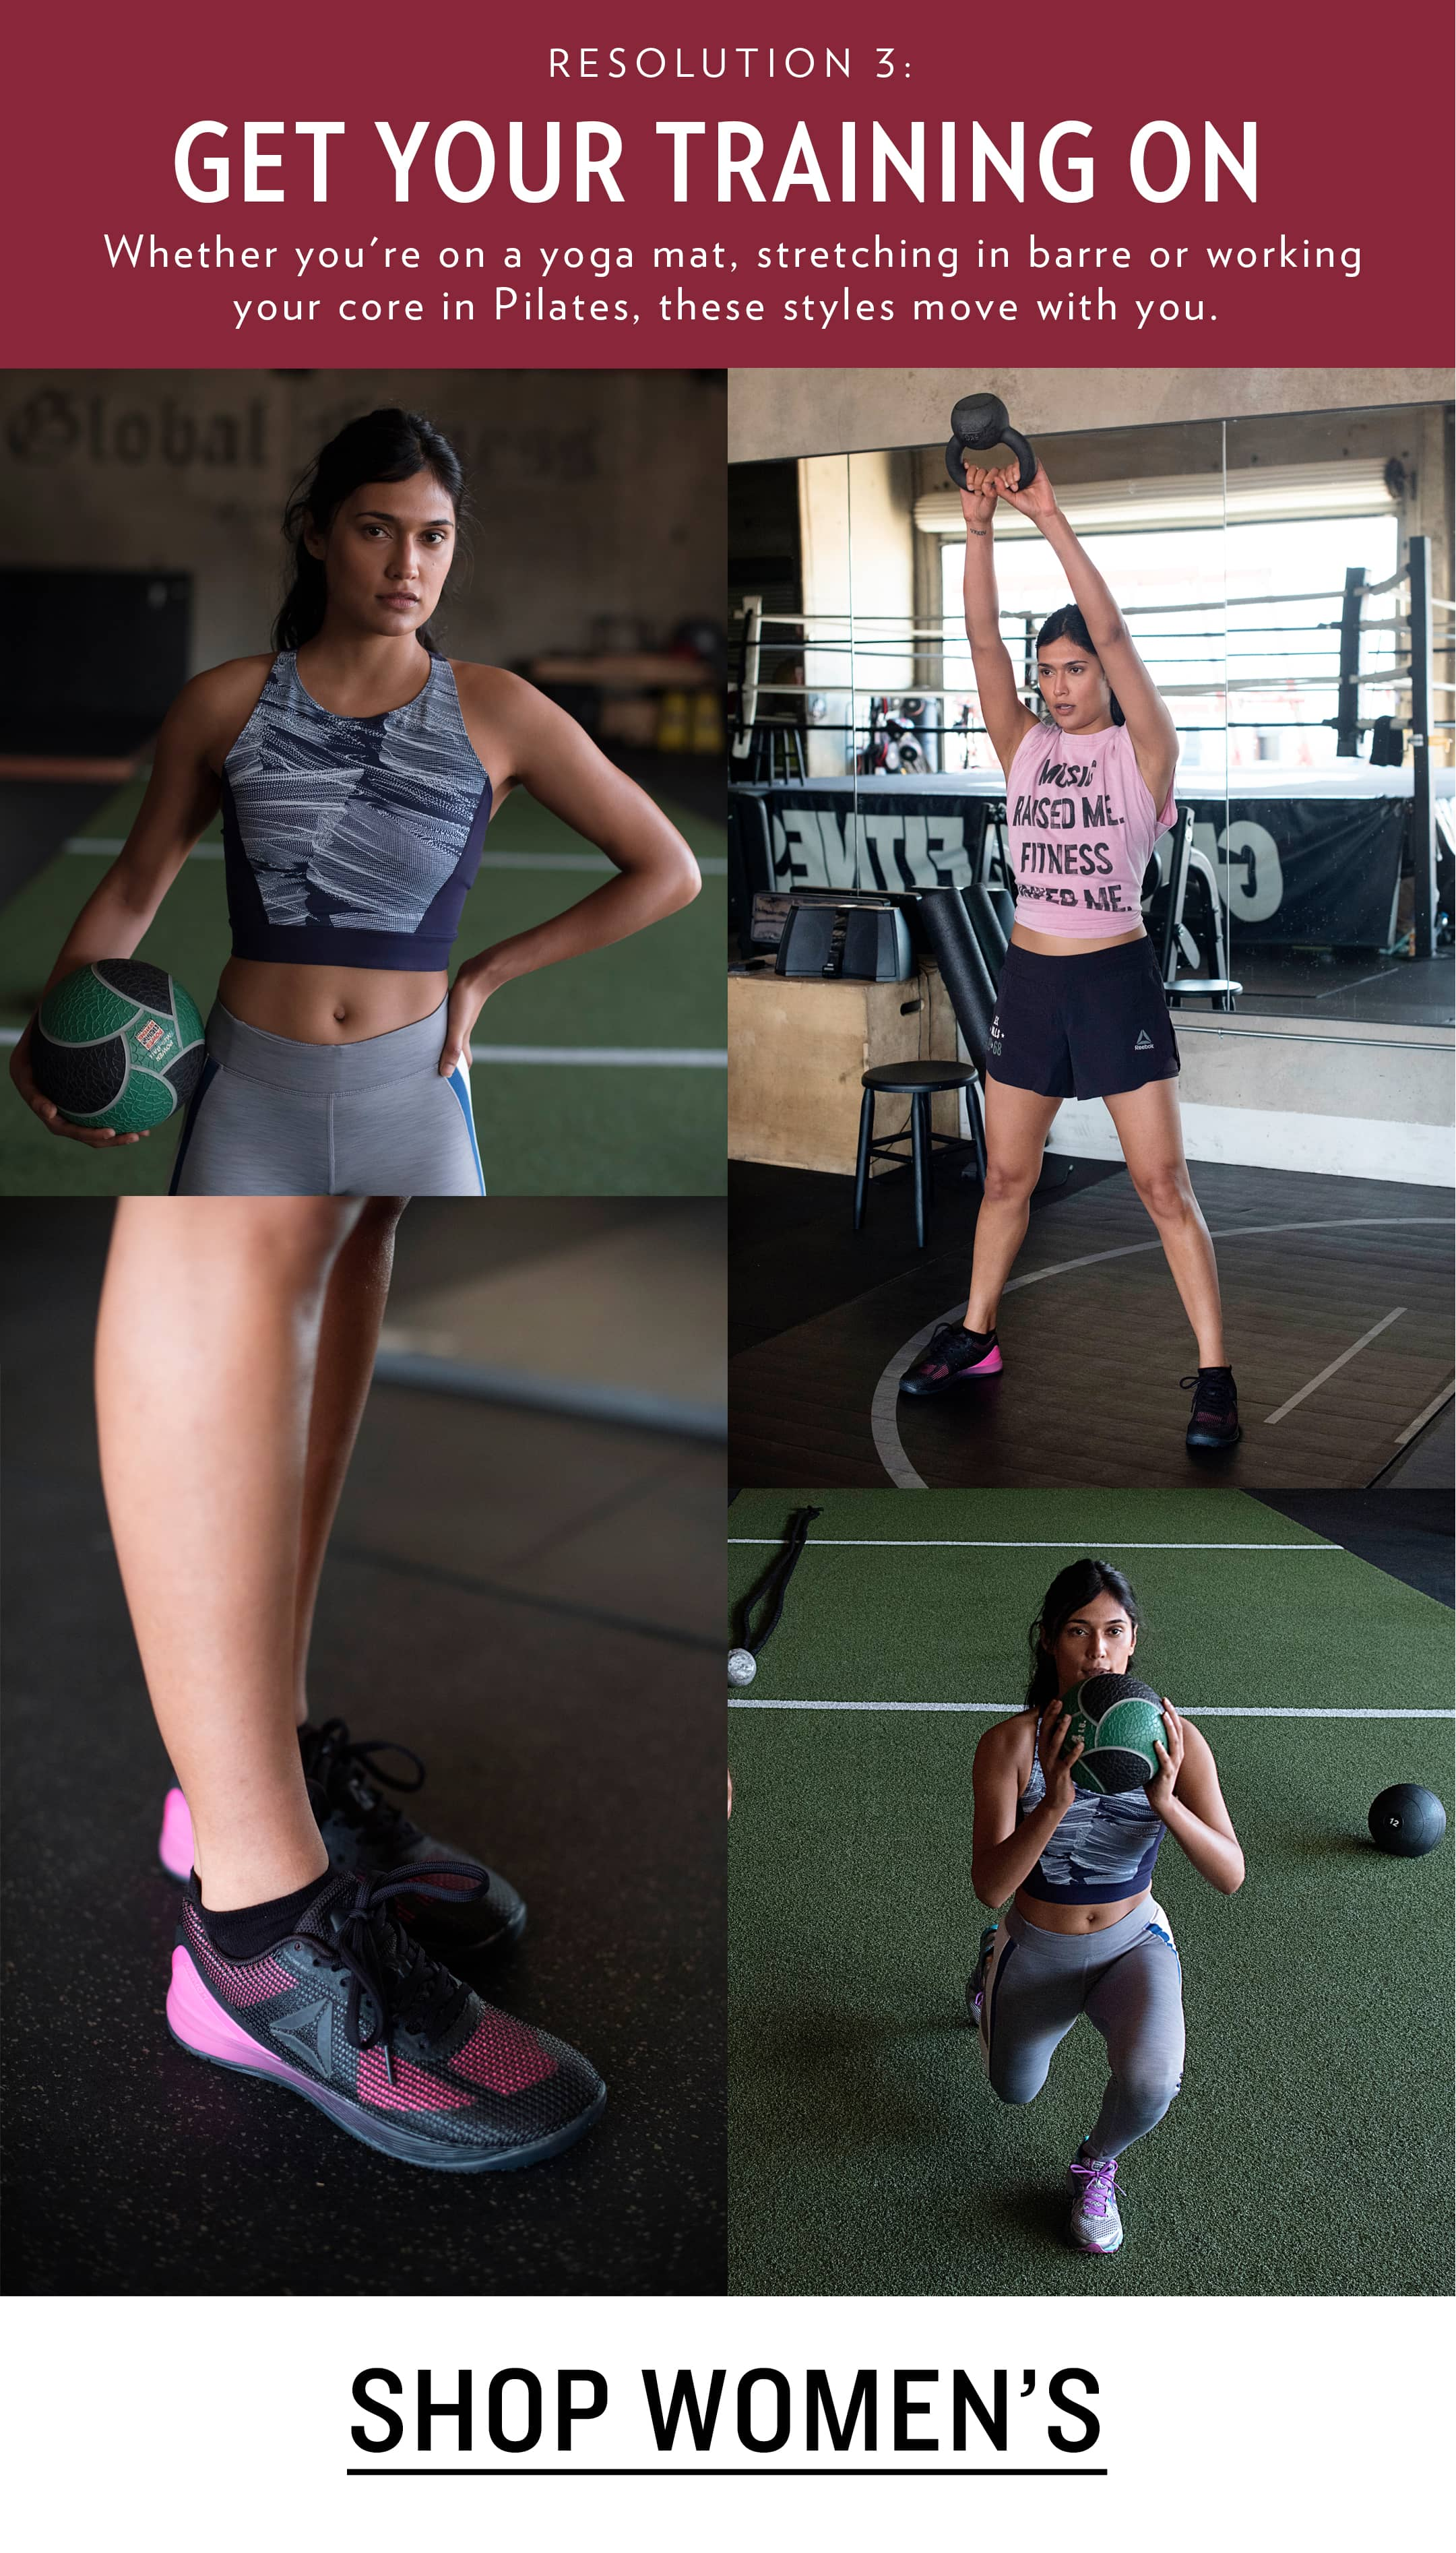 Women's Cross-Training Shoes and Clothing